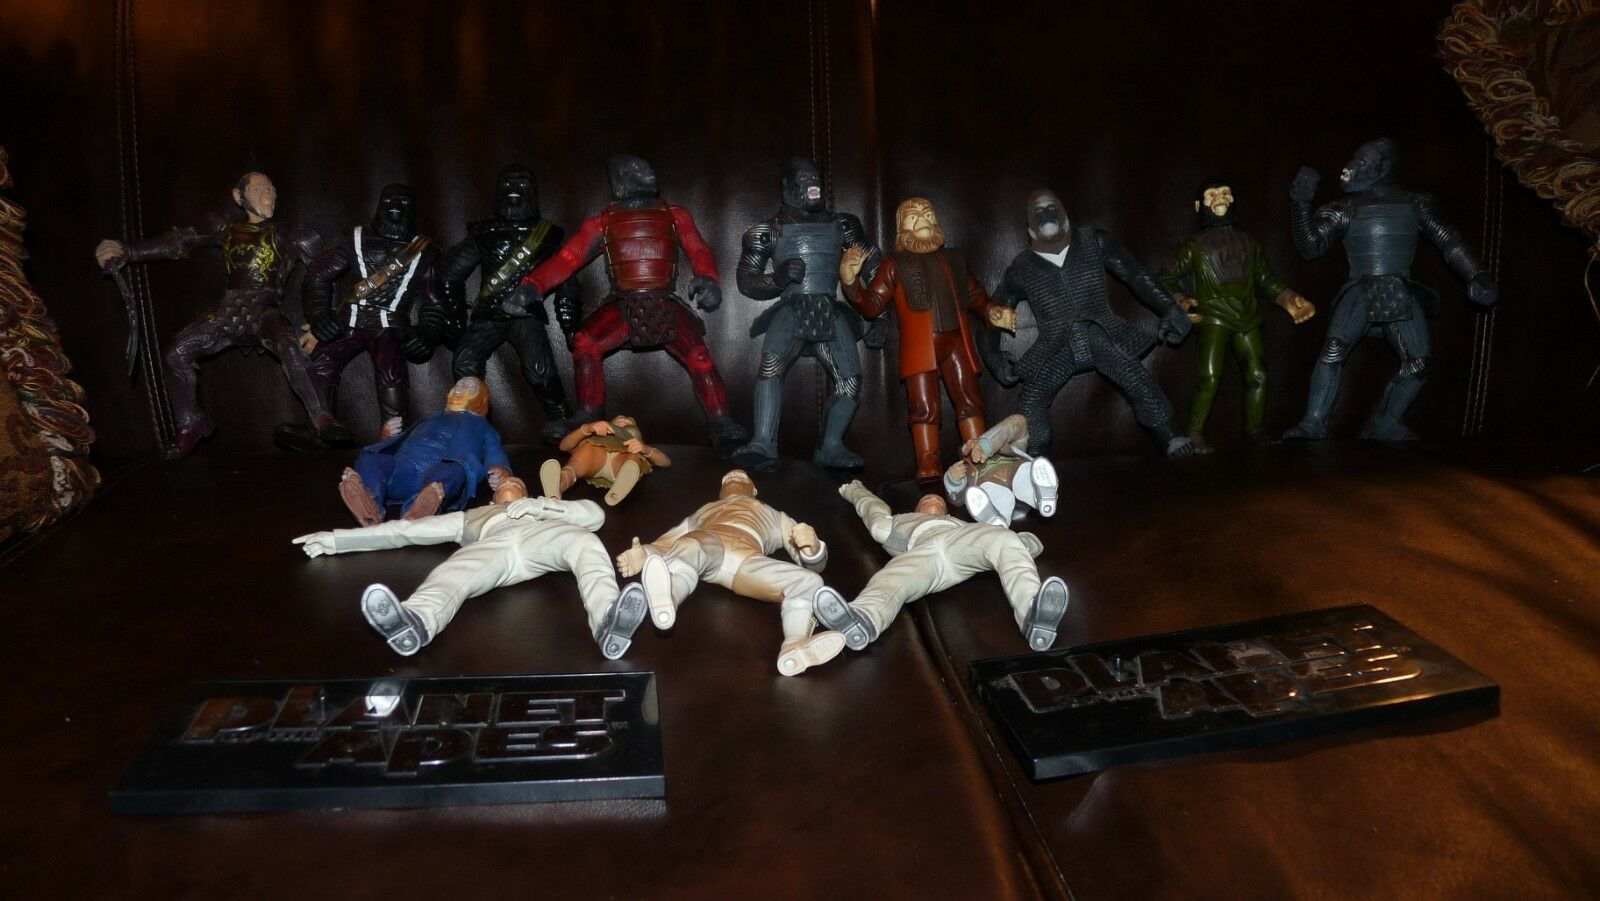 Lot of Vintage Planet of the Apes Action Action Action Figures  6'-7'' includes Thade No Horse f488a8